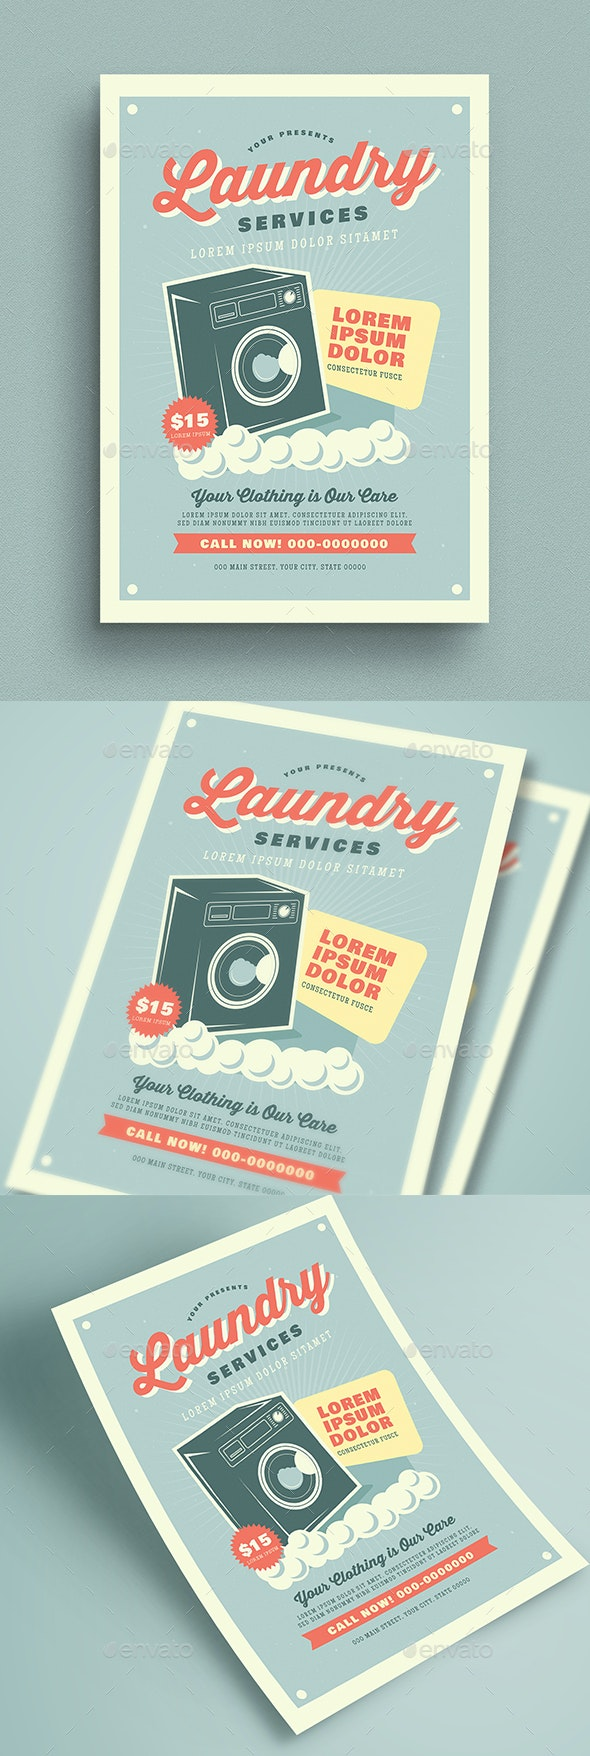 Retro Laundry Service Flyer - Commerce Flyers